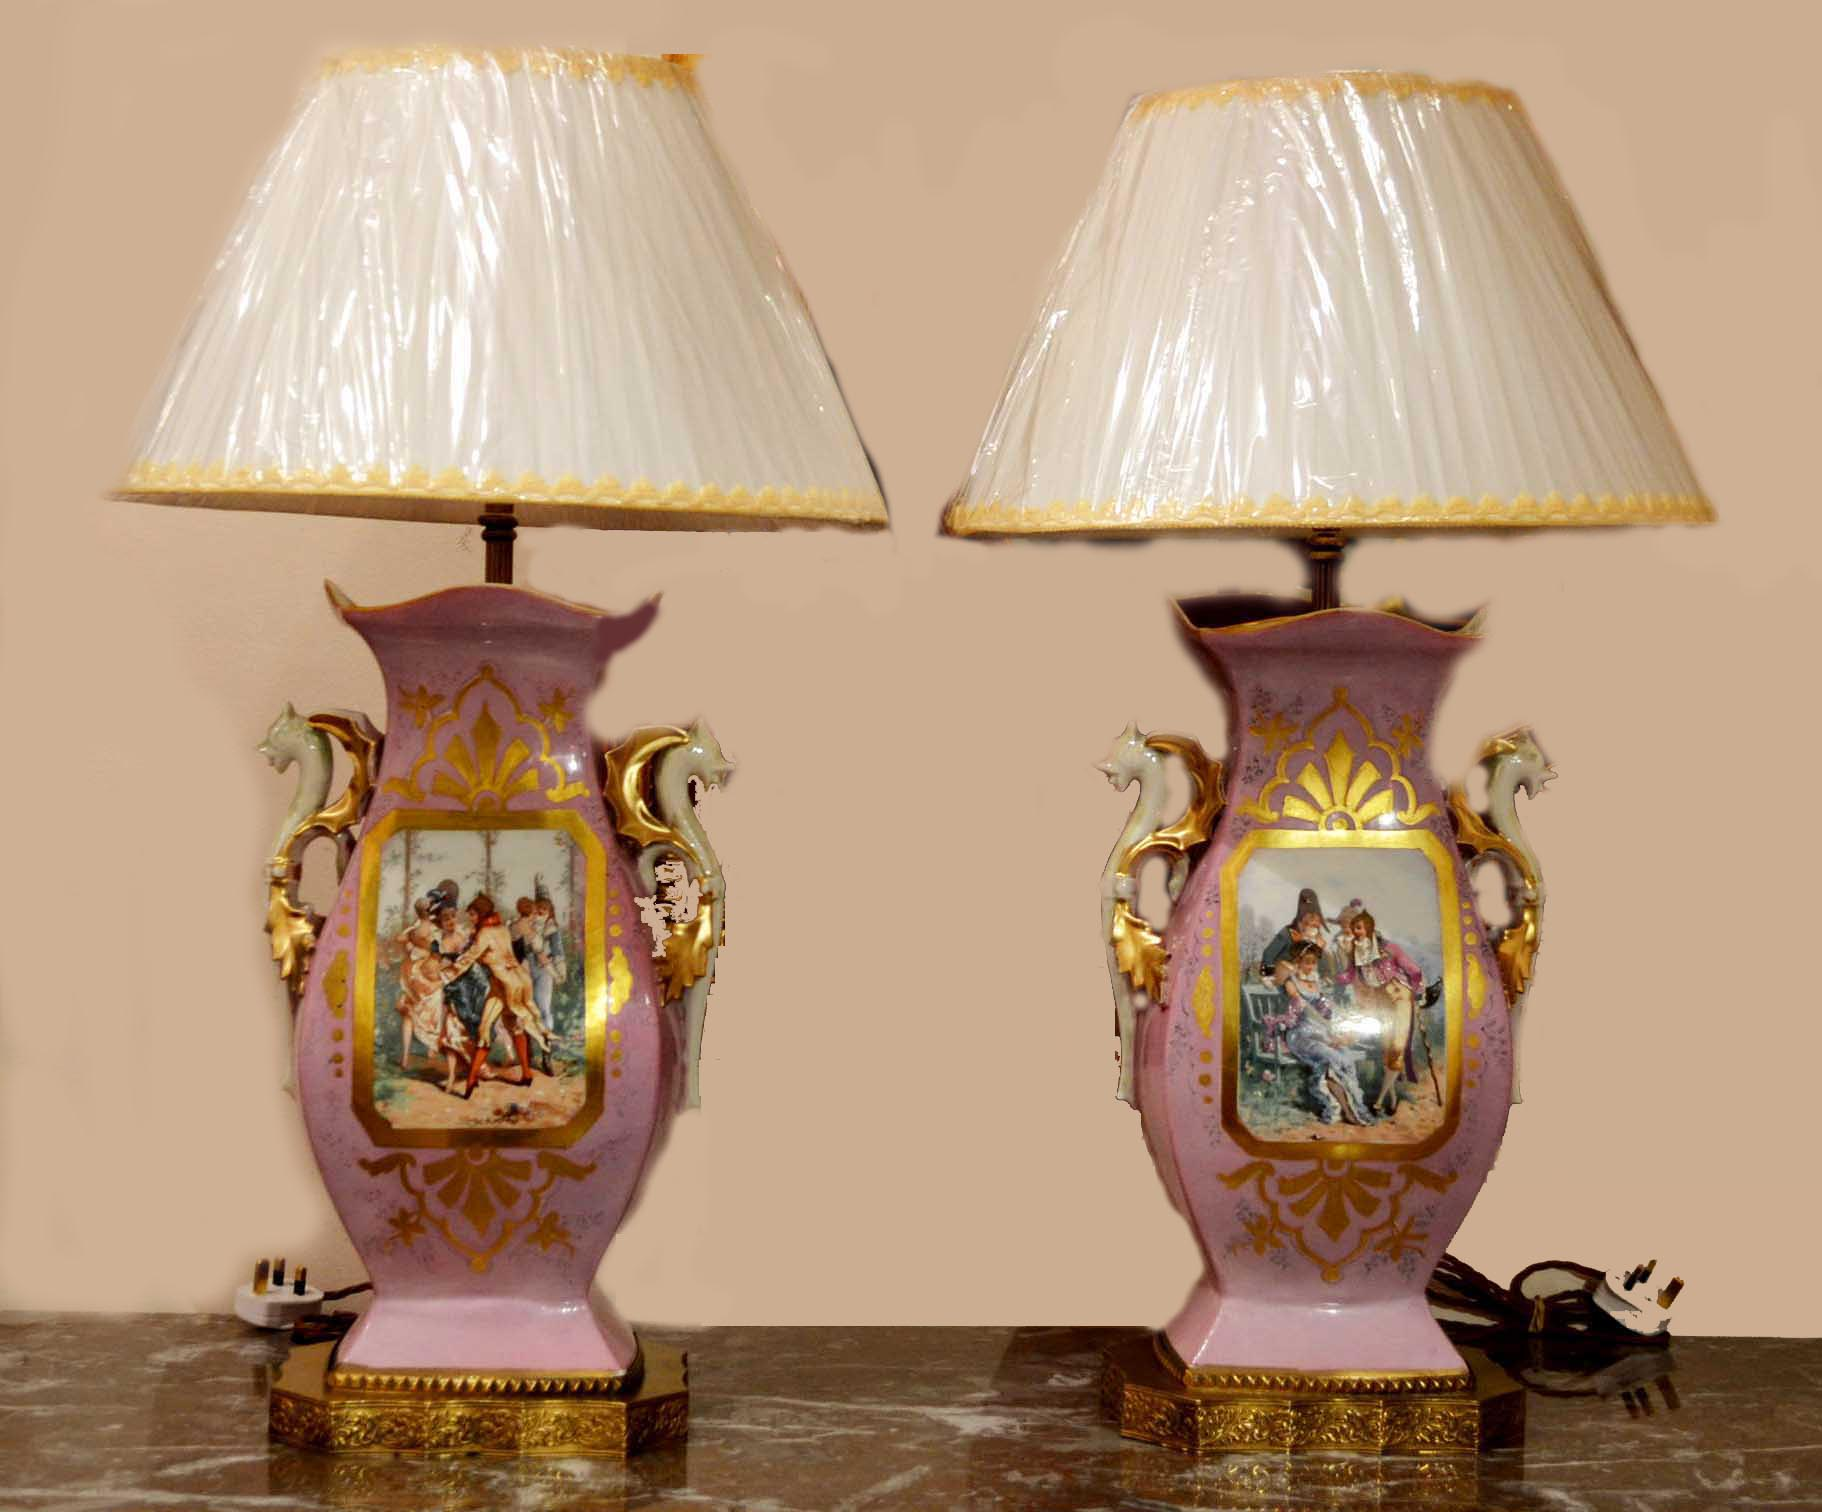 Regent Antiques Lights Antique Pair of Paris Porcelain  : 03711 Antique Pair of Paris Porcelain Lamps C1850 1 from regentantiques.com size 1822 x 1512 jpeg 192kB